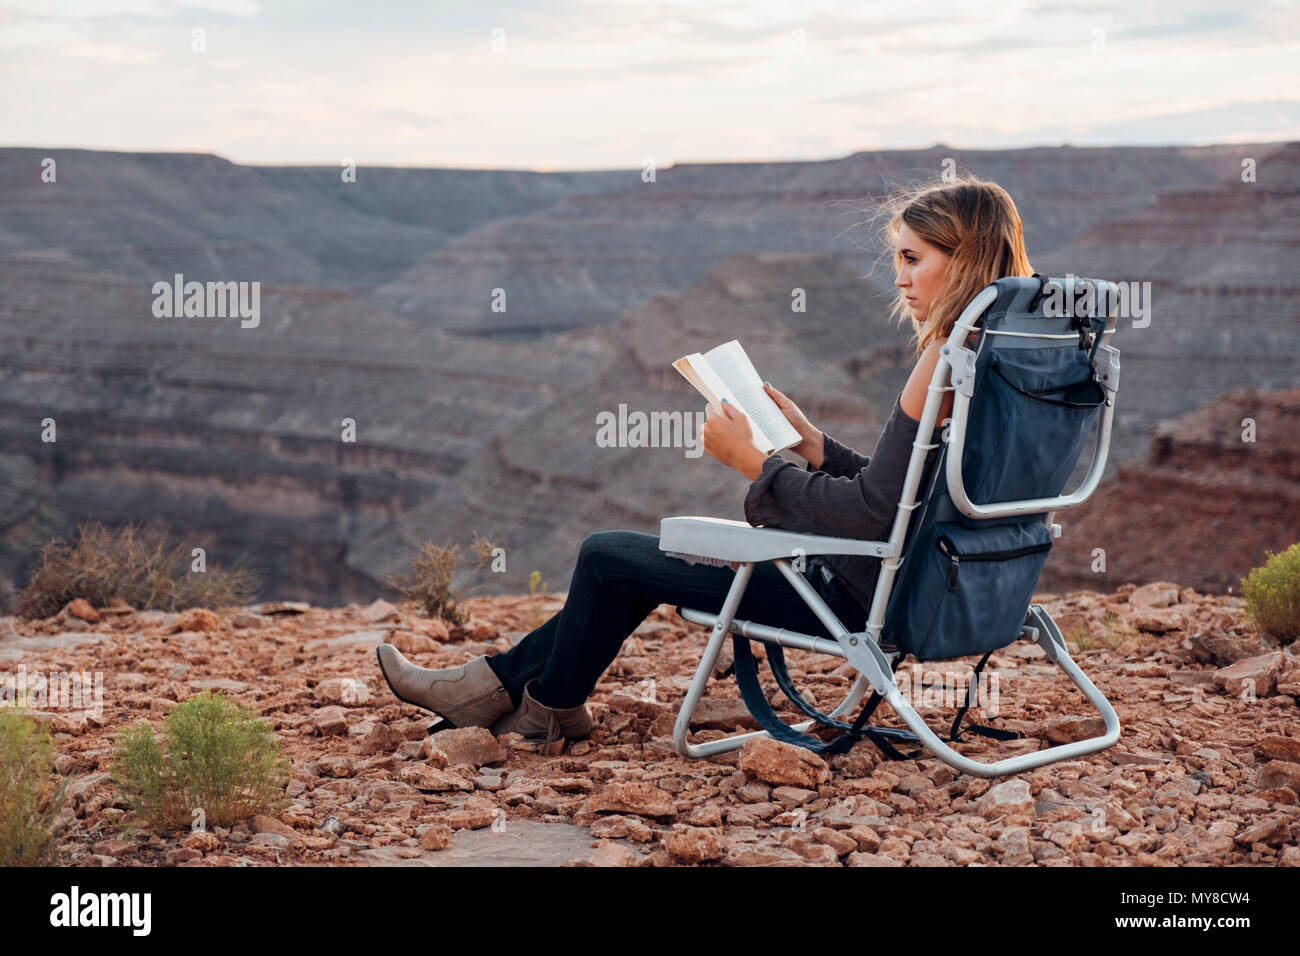 Young woman in remote setting, sitting on camping chair, reading book, Mexican Hat, Utah, USA - Stock Image